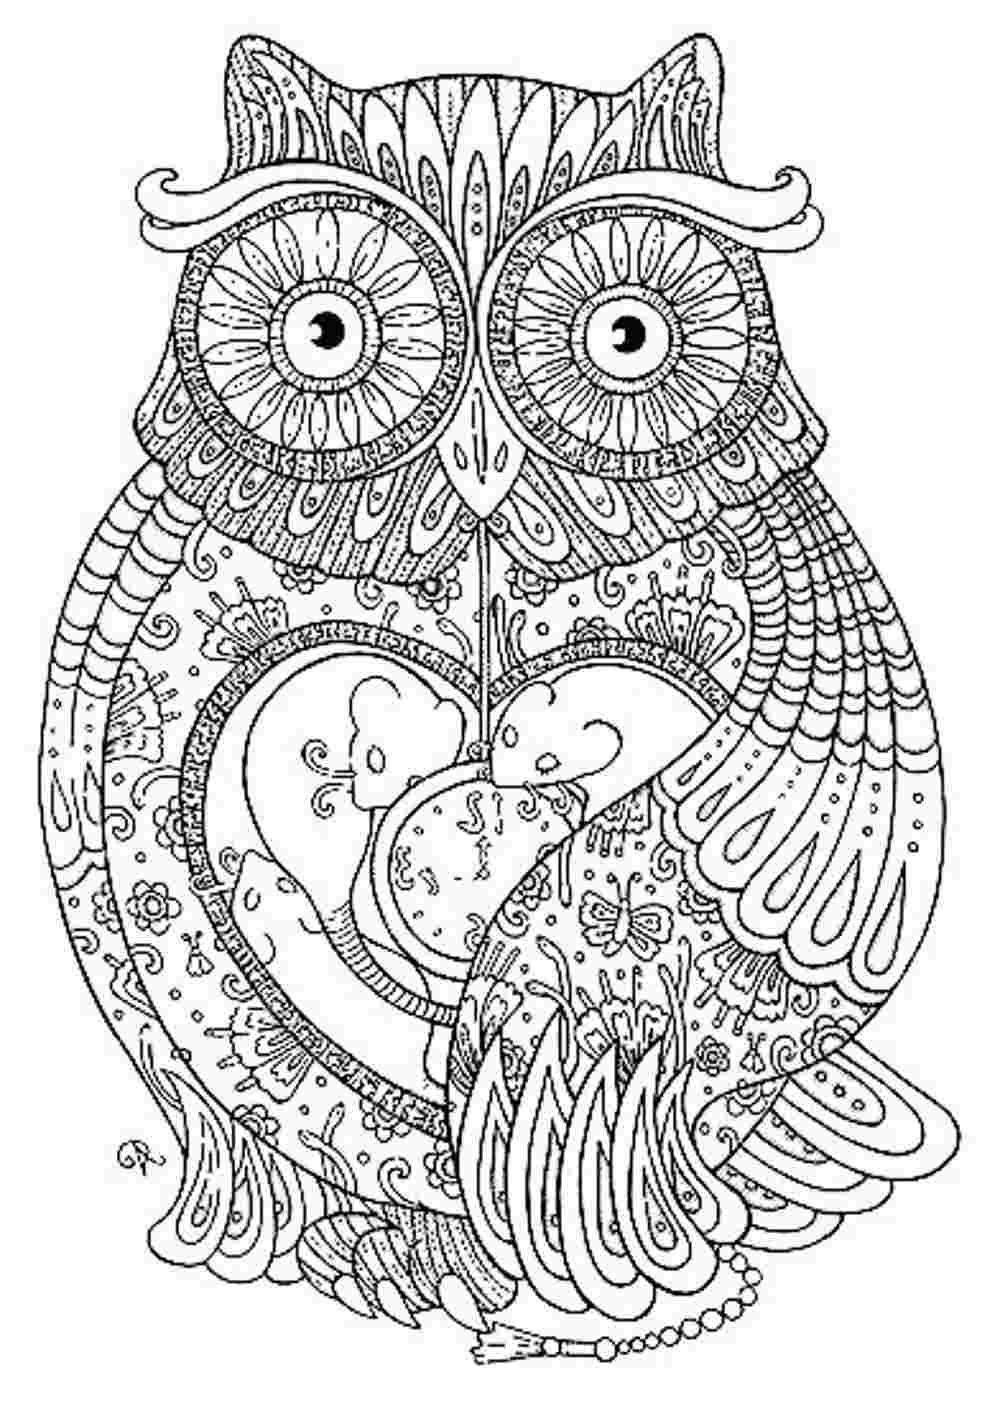 1000x1403 Hard Owl Coloring Pages Get Gallery Of For Adults Difficult Owls